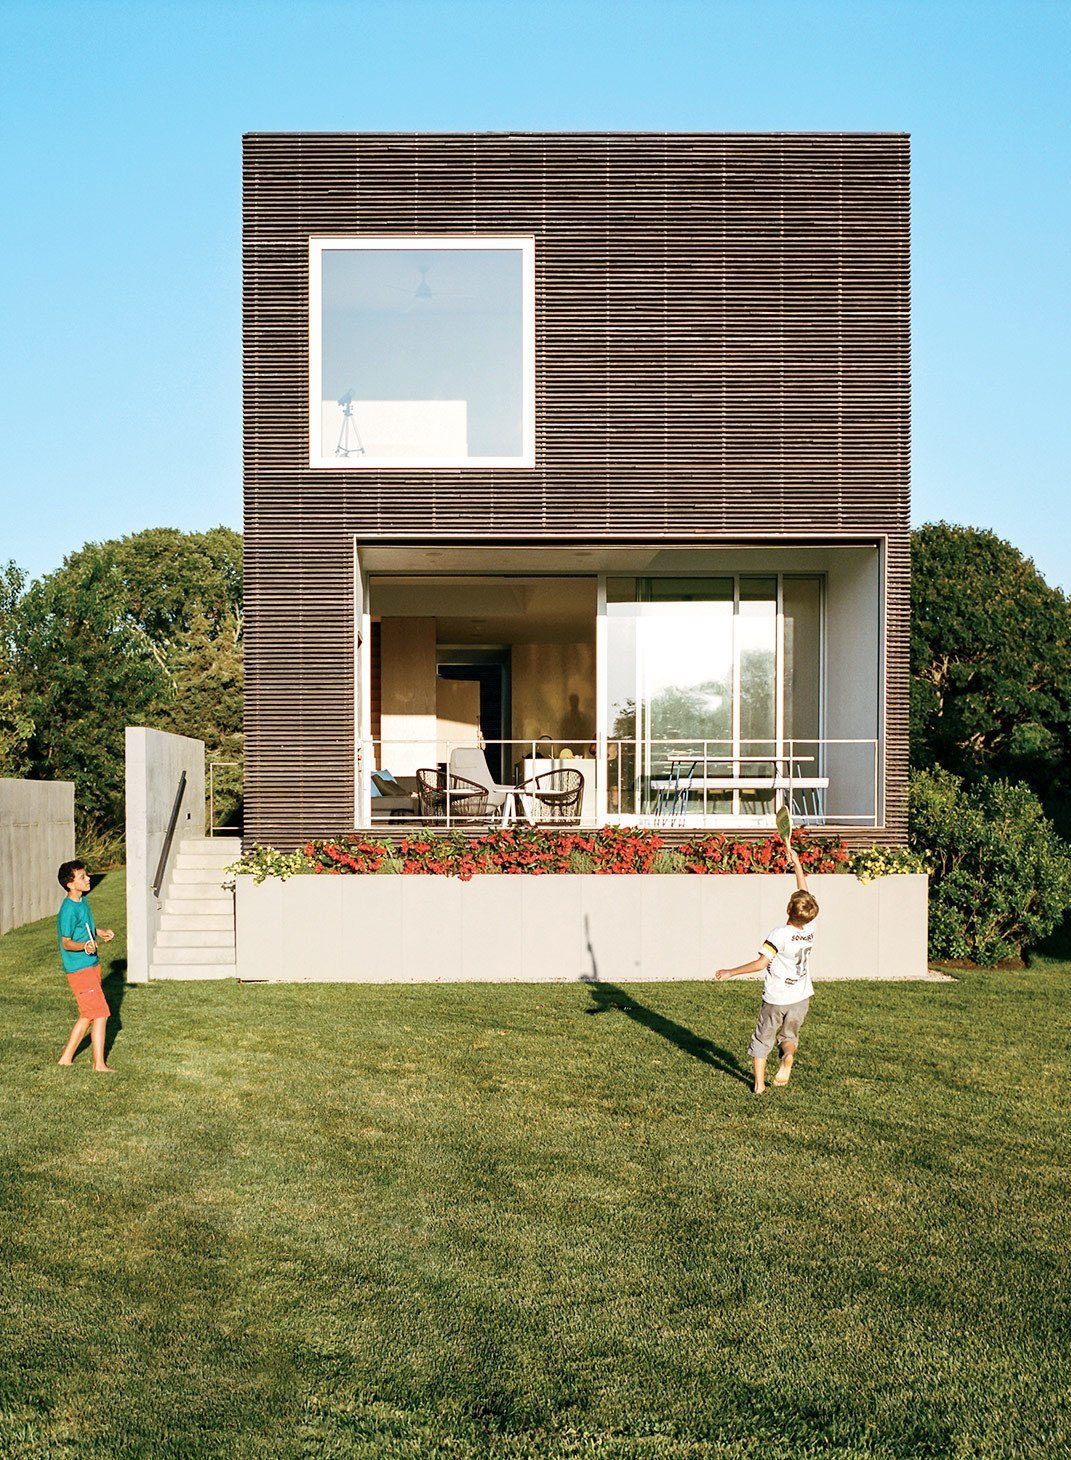 Outdoor, Back Yard, Trees, Vertical, Grass, Raised Planters, and Small This Rhode Island home has a modernist box structure with an exterior made of milled, charred, brushed, and oiled cypress slats manufactured by Delta Millworks.  Best Outdoor Vertical Raised Planters Photos from 10 Striking Homes Featuring the Japanese Art of Shou Sugi Ban